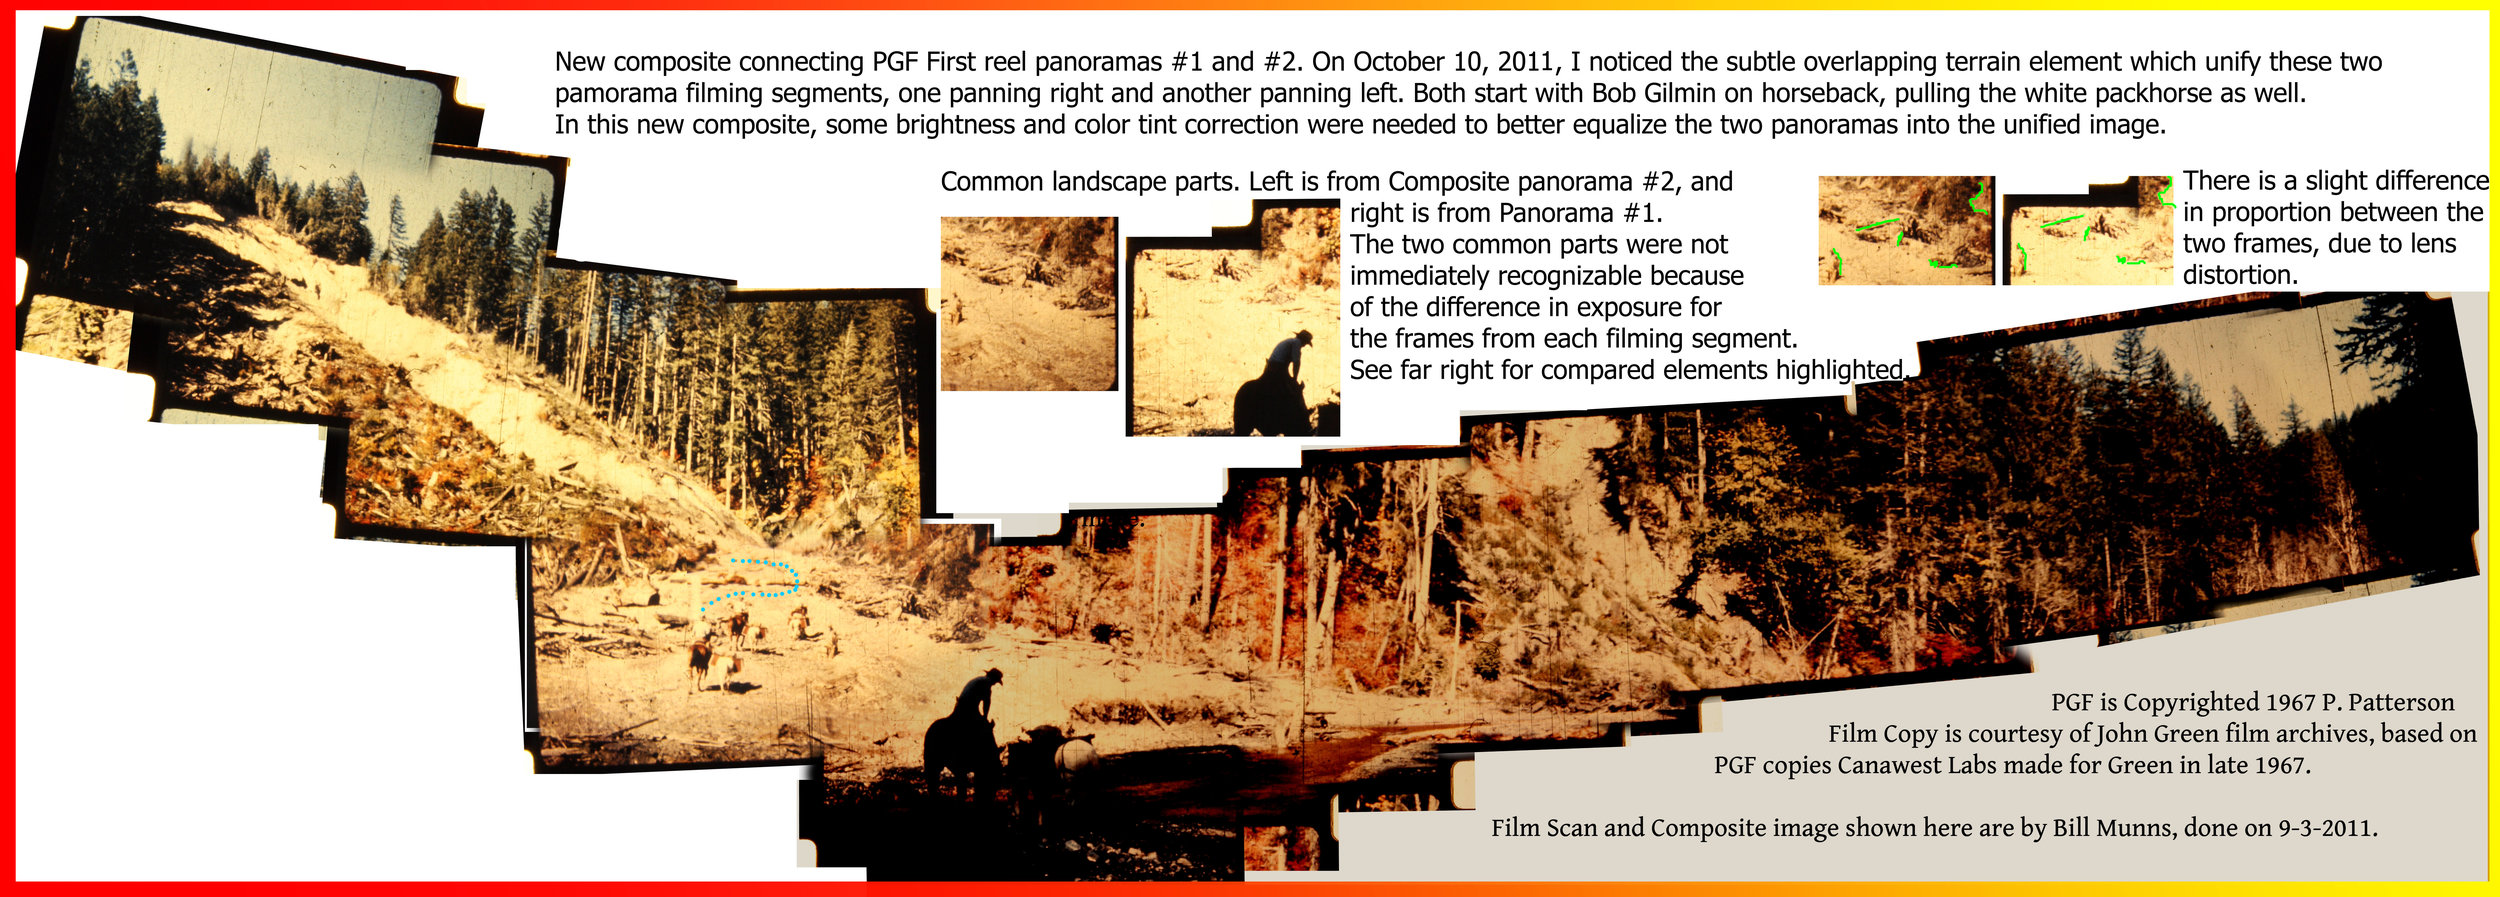 A composite of #1 and #2 Panorama Composites, pieced together by Bill Munns